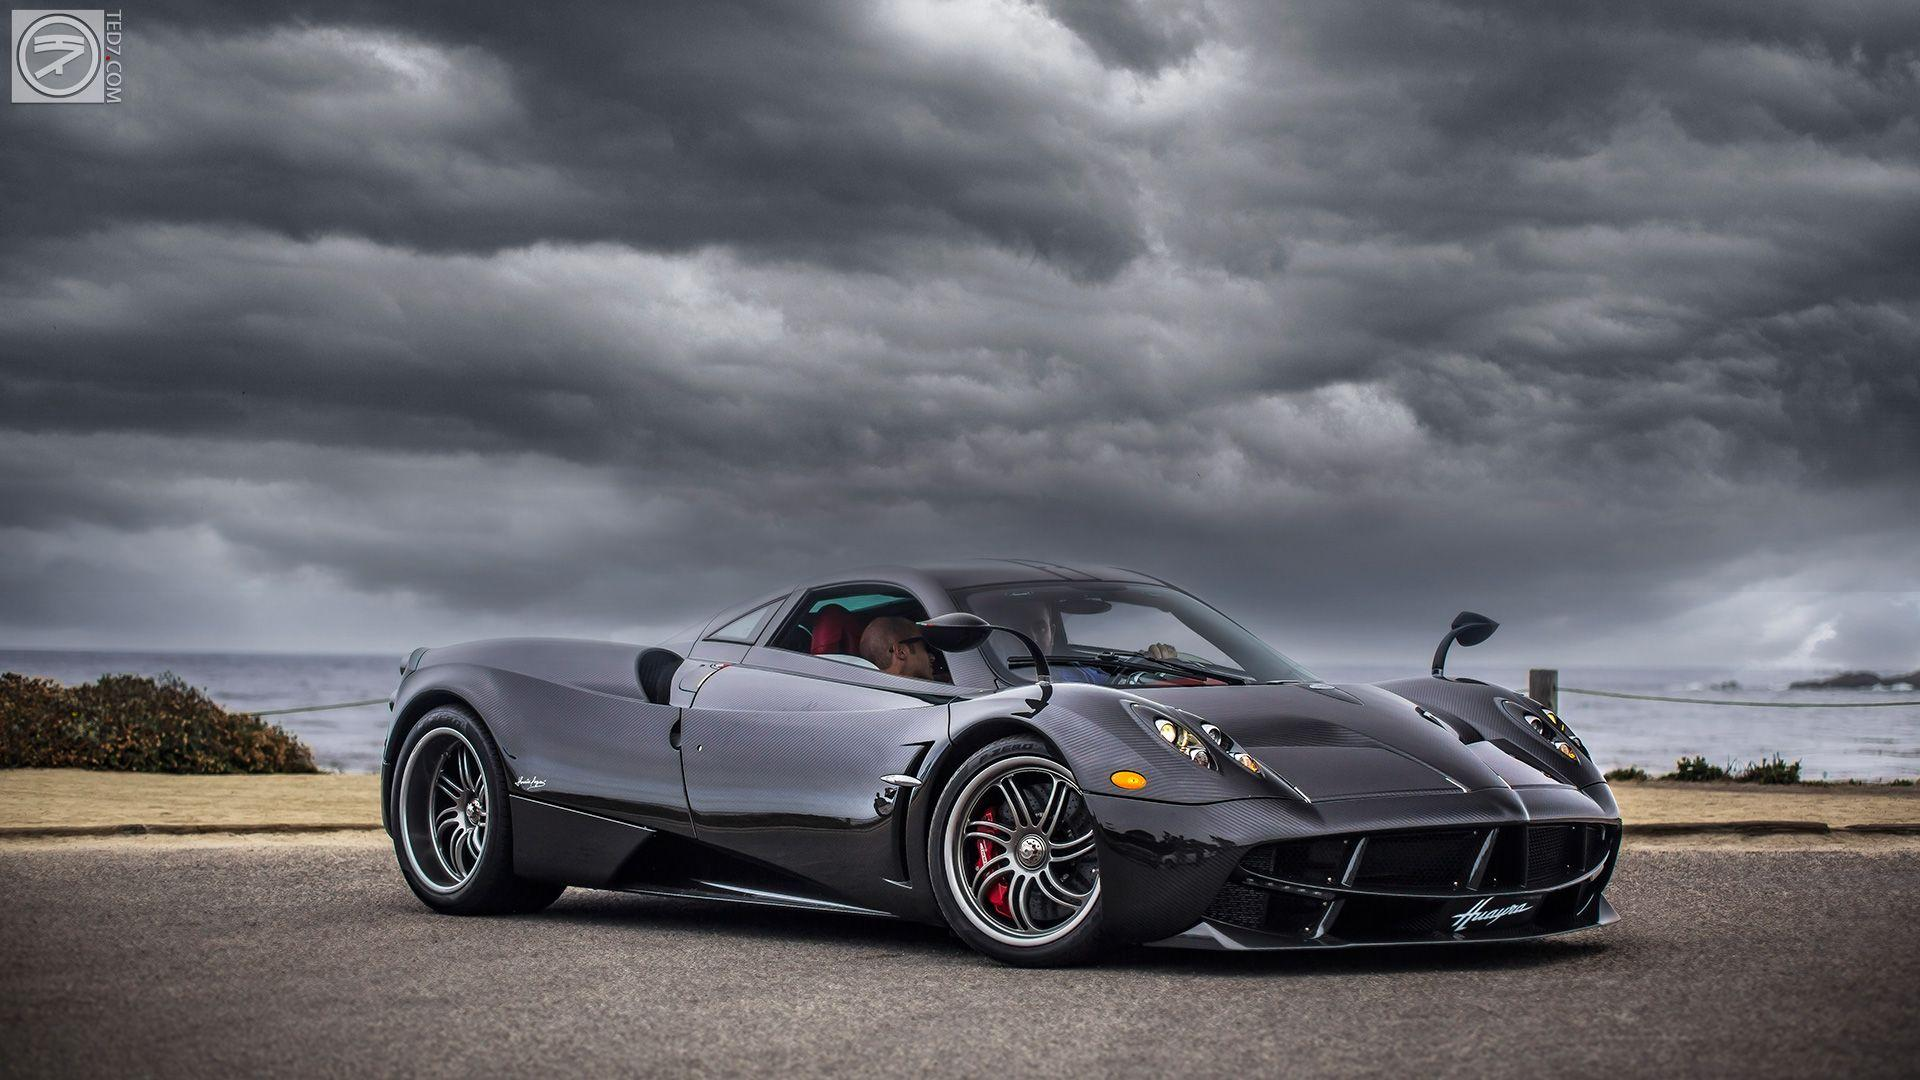 Cars Wallpaper App Pagani Huayra Wallpapers Wallpaper Cave